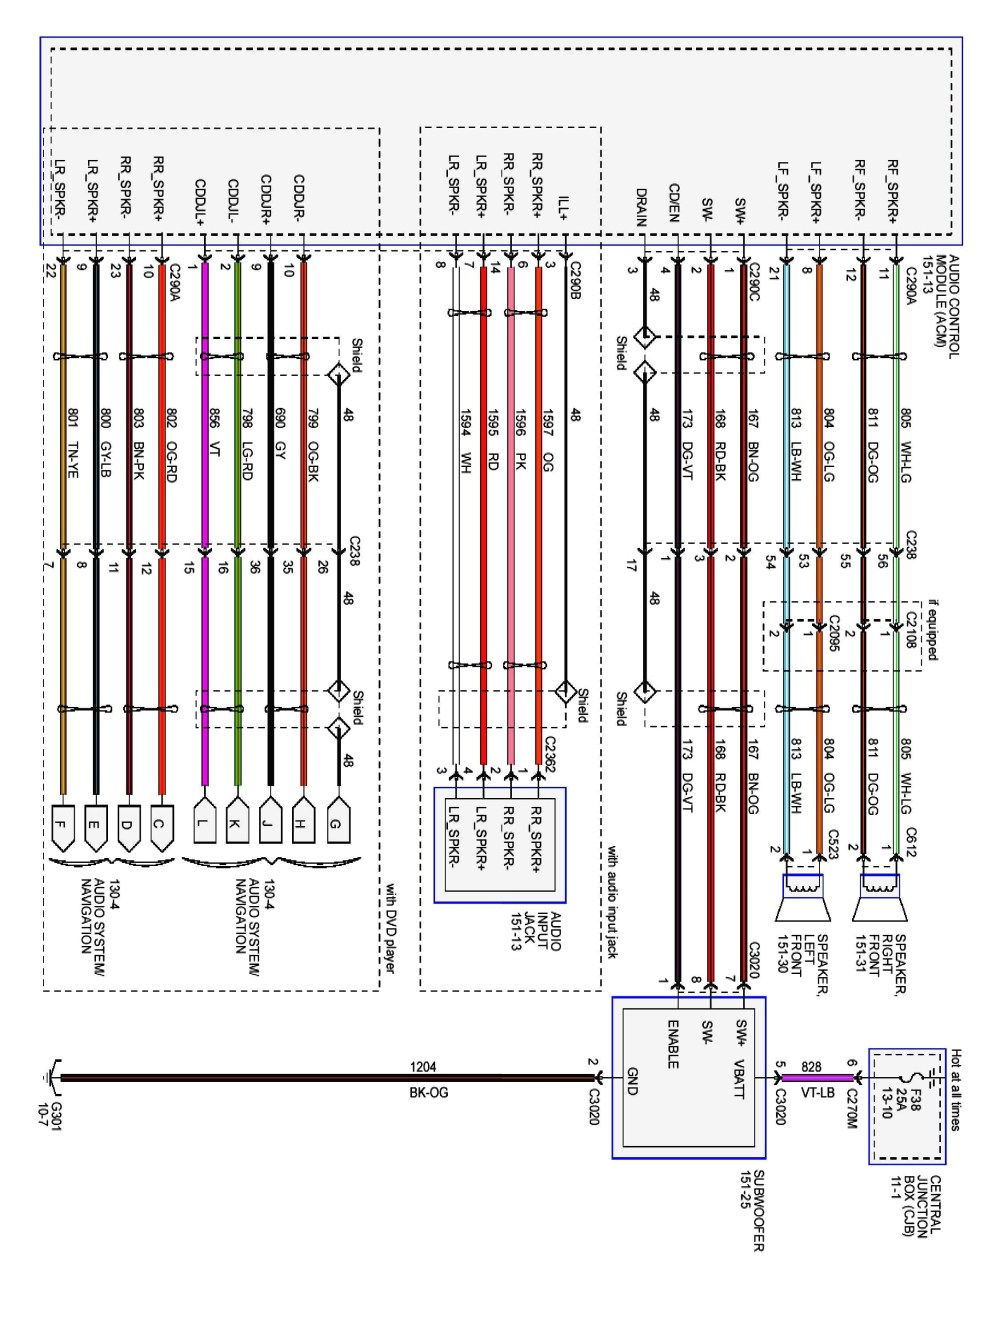 medium resolution of 2003 ford focus radio wiring diagram download wiring diagram sample 2013 f 150 7 pin